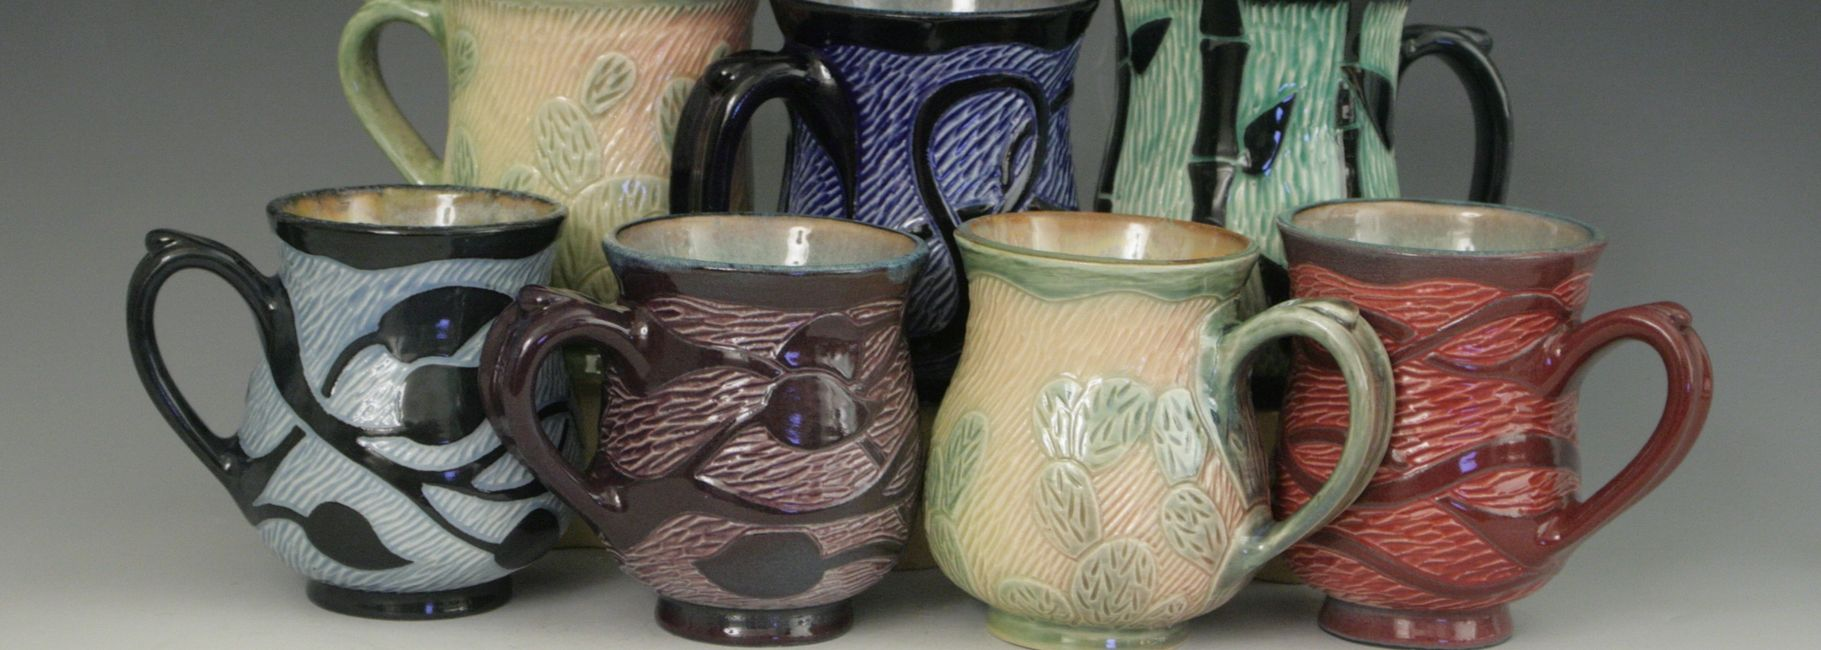 Sgraffito mugs by Lisa Harnish